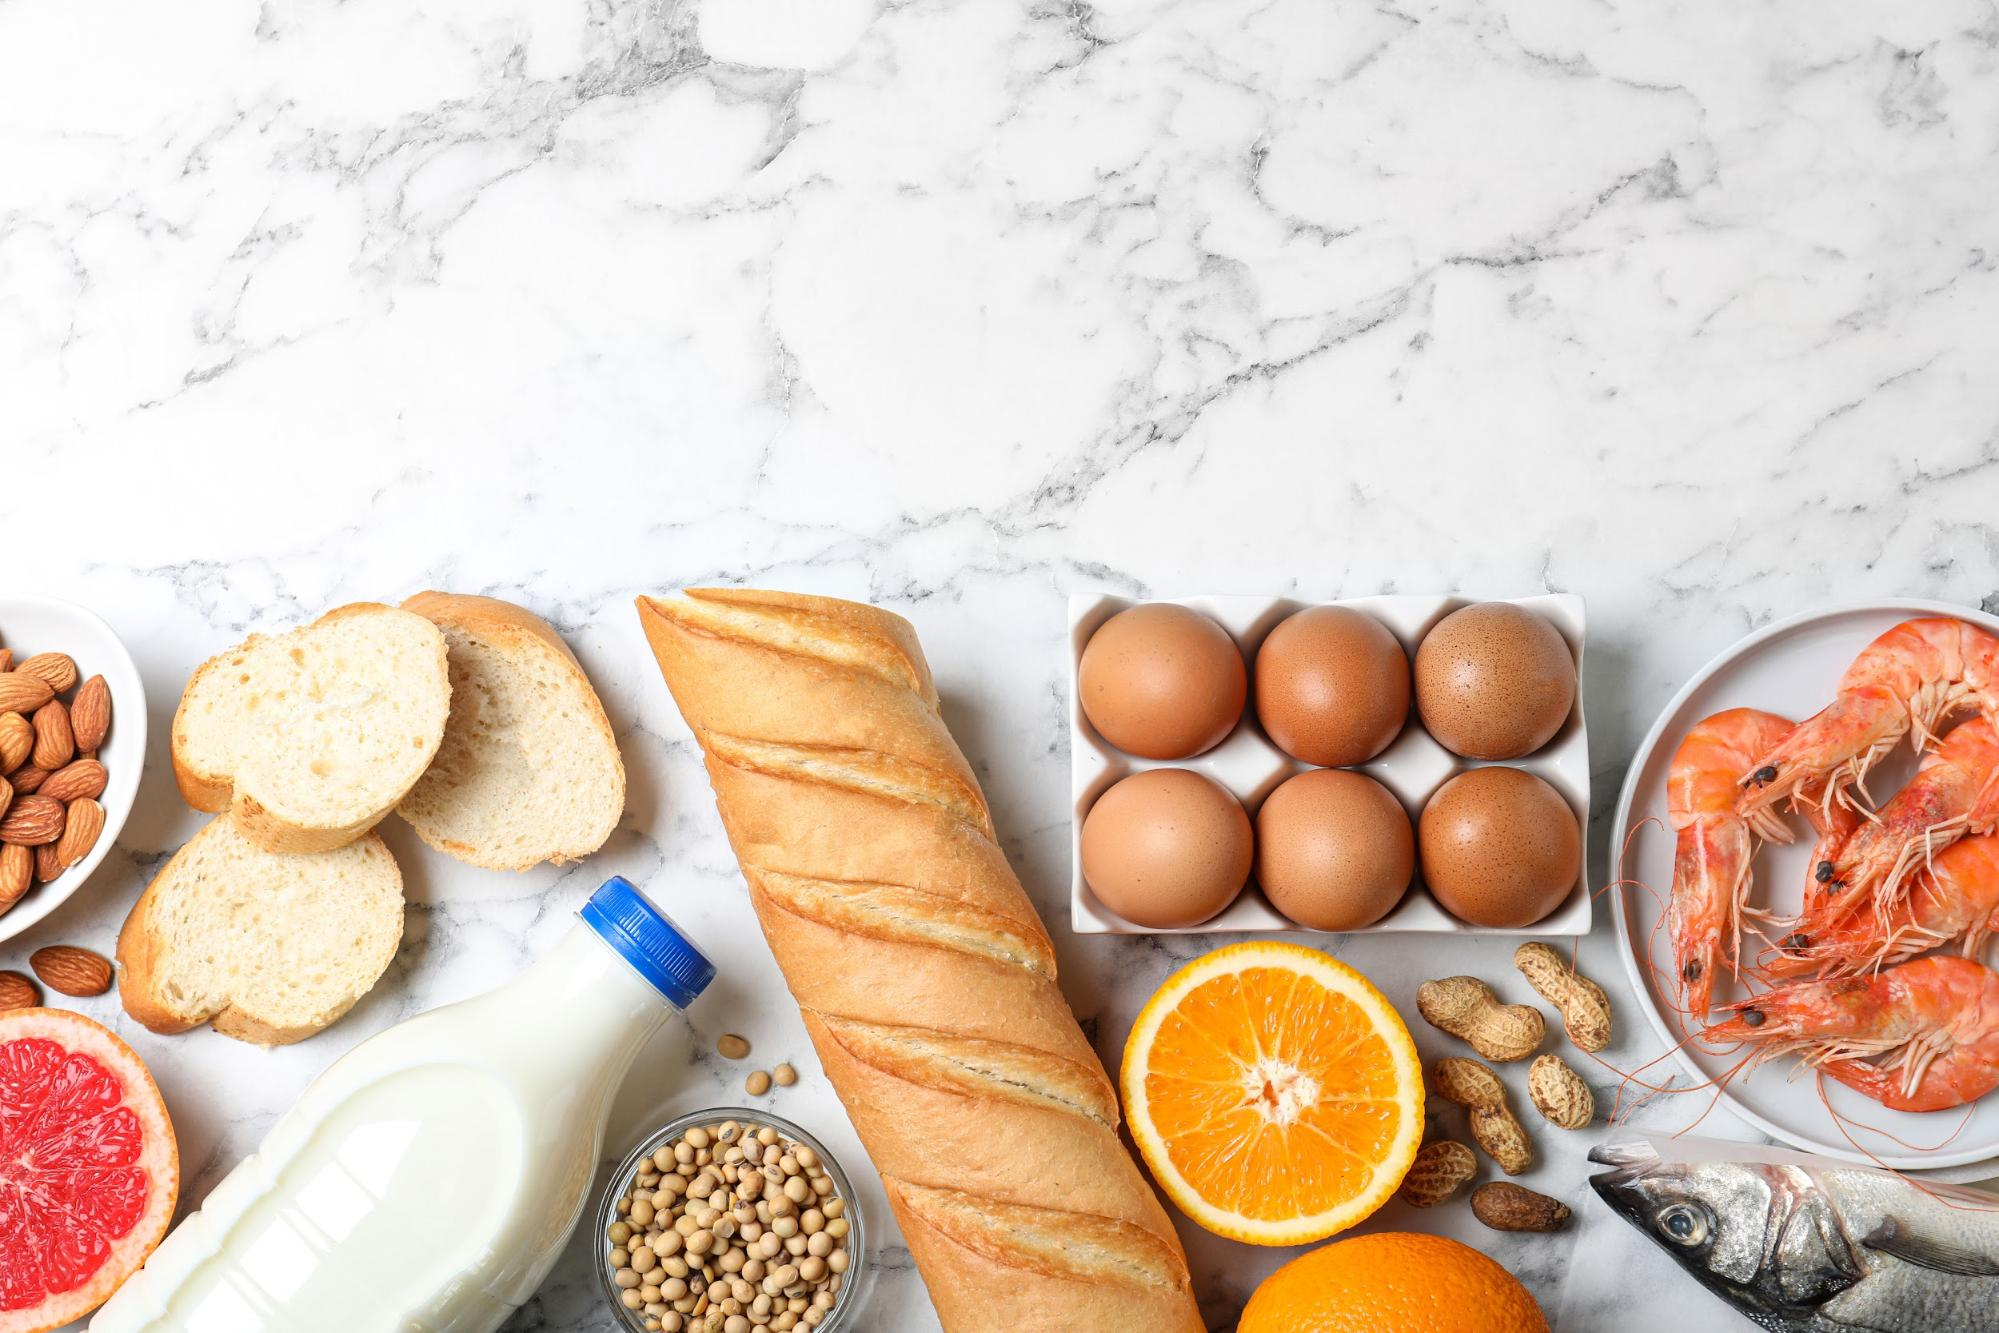 common food intolerances: A variety of food on top of a marble surface